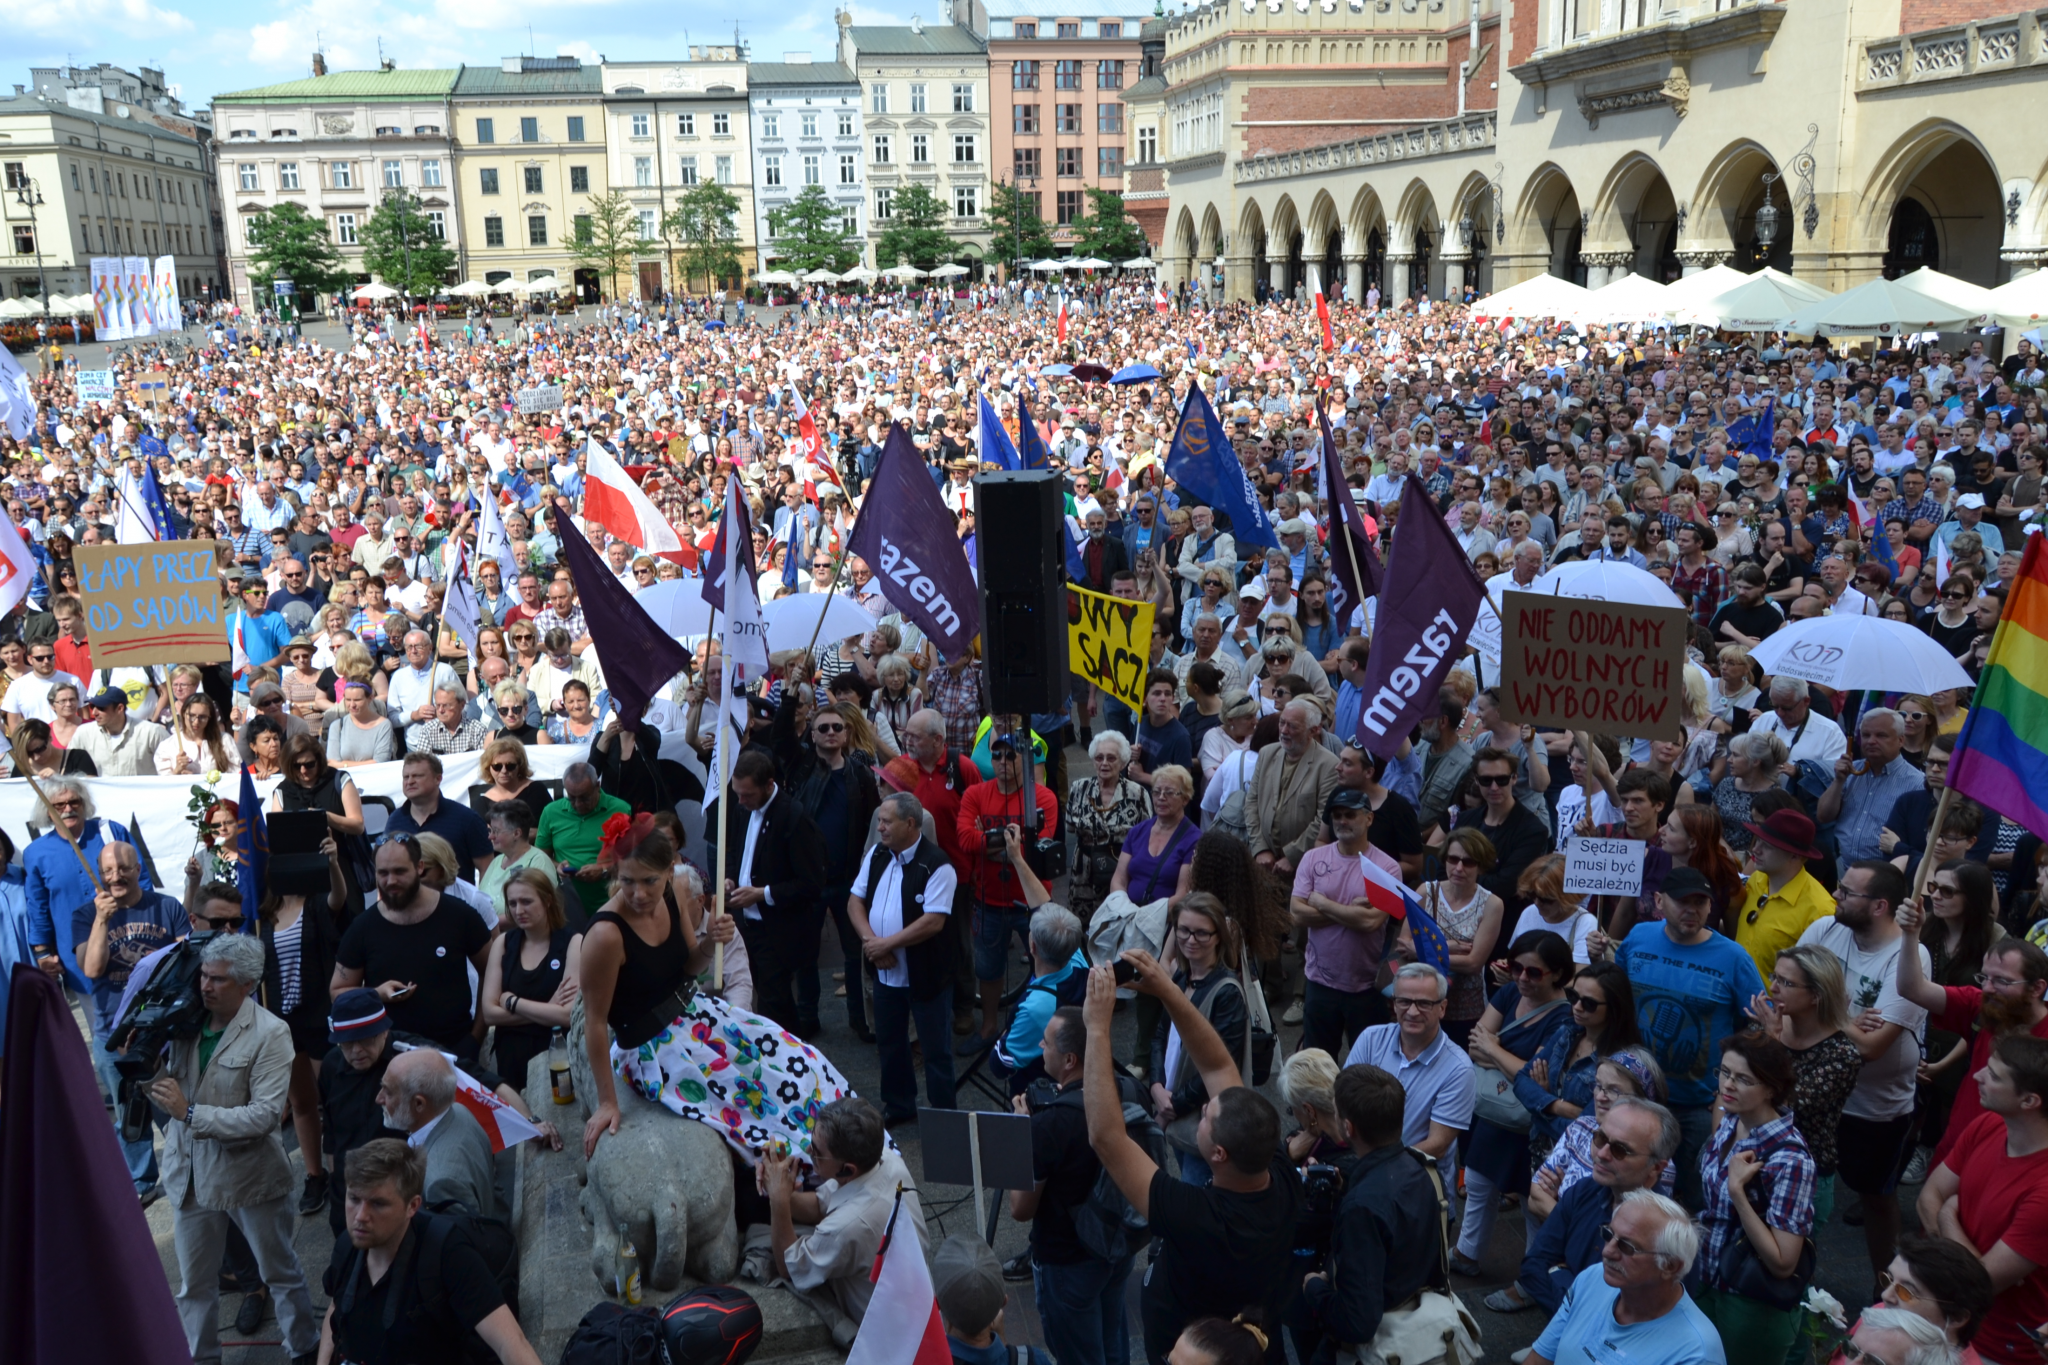 Thousands protest in Warsaw ahead of judicial reform vote